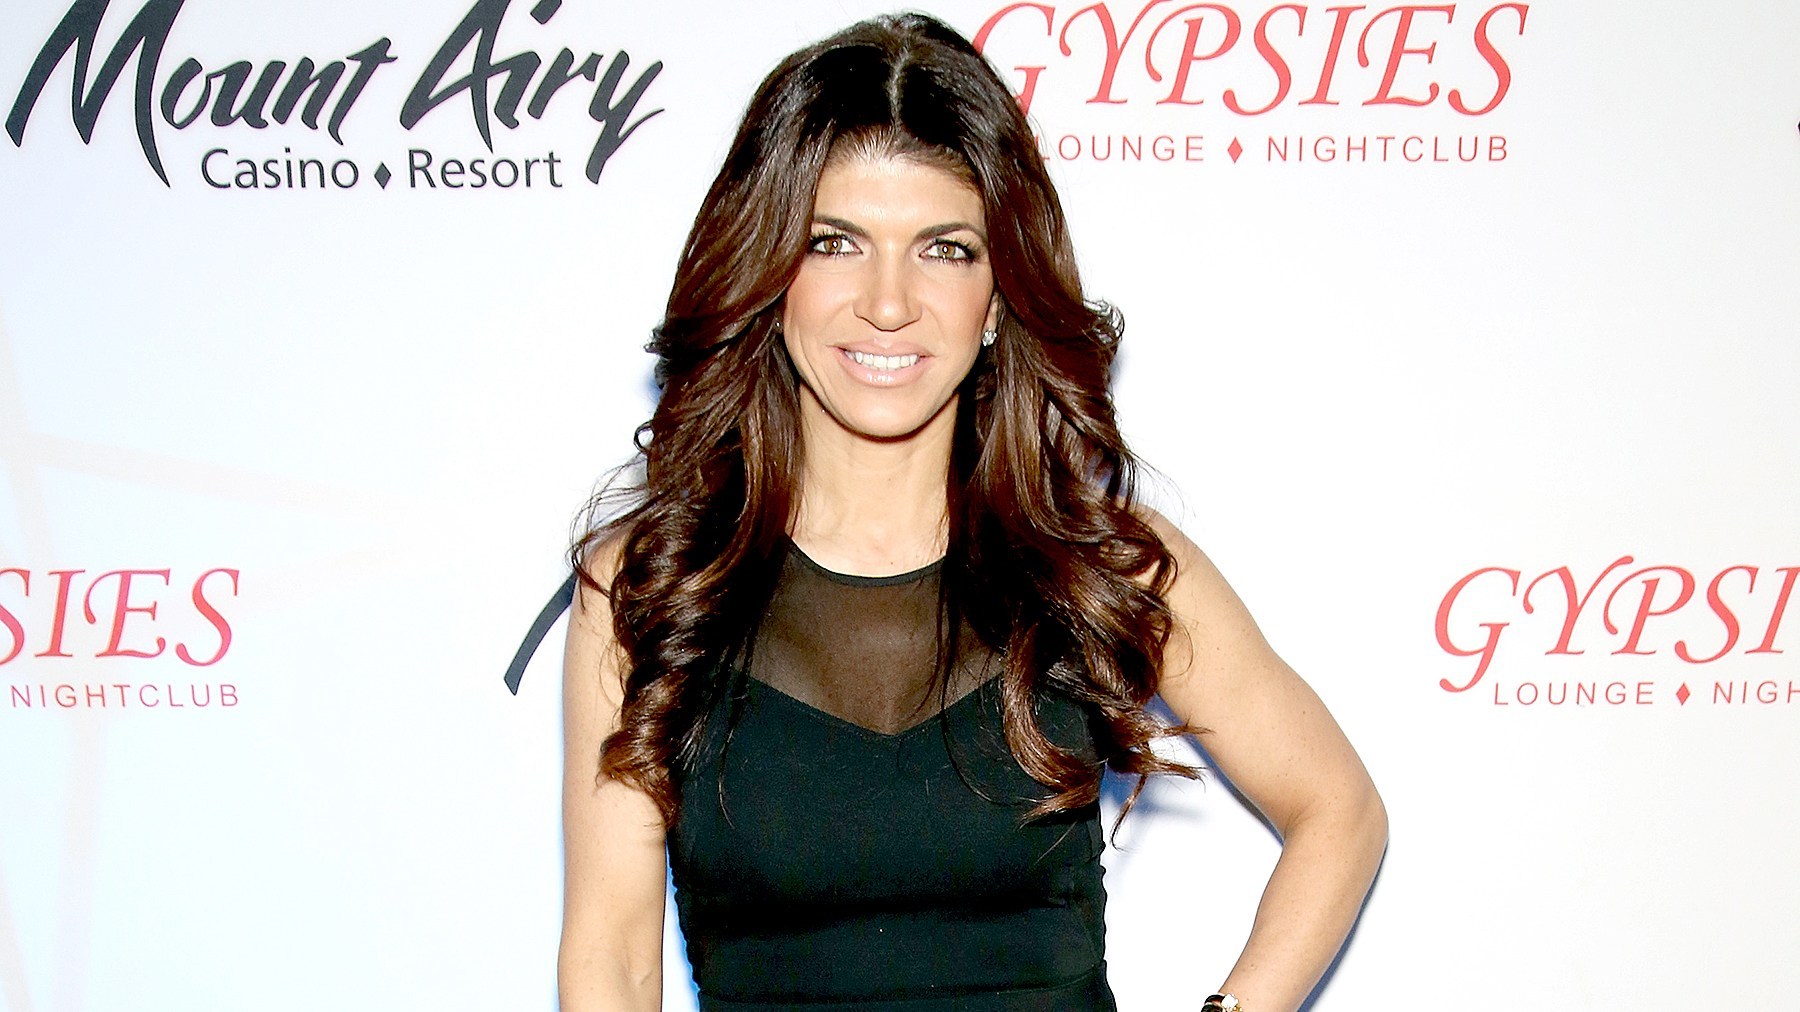 Teresa Giudice, star of The Real Houswives of New Jersey, appears at Mount Airy Resort Casino for a book signing and meet and greet on March 5, 2016 in Mount Pocono City.